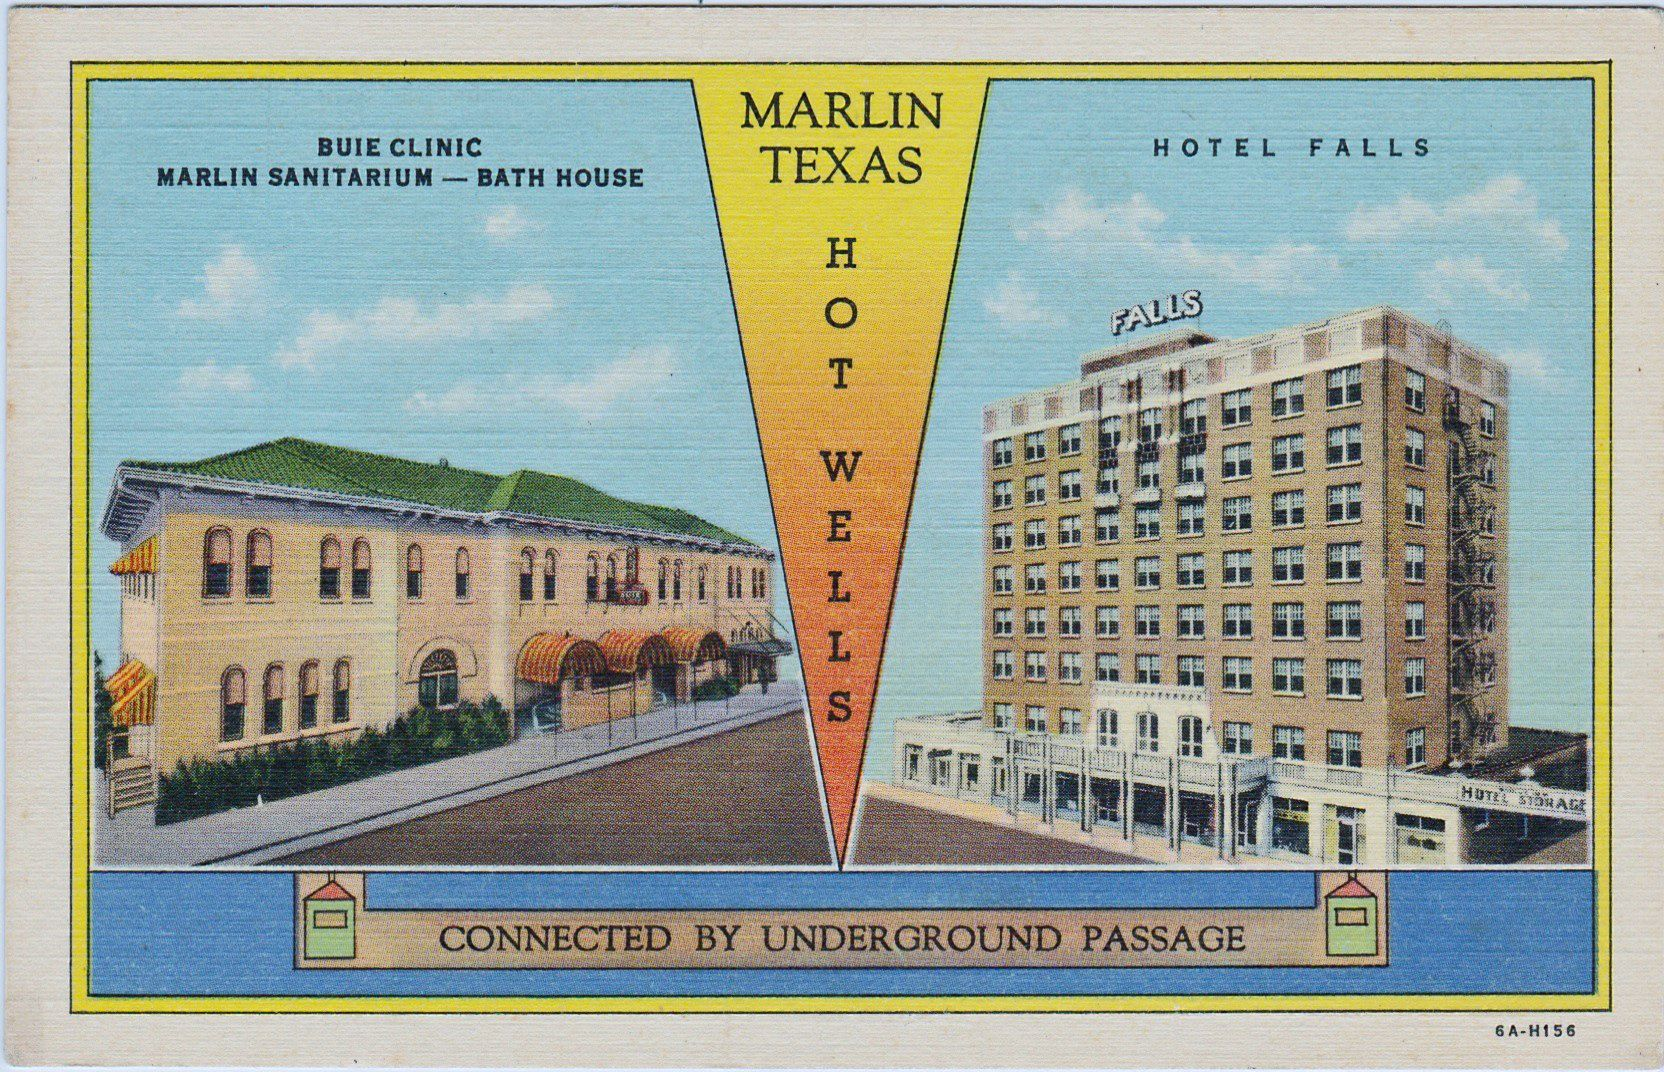 Falls Hotel Marlin Tx 1936 Connected By Underp To Afford Privacy